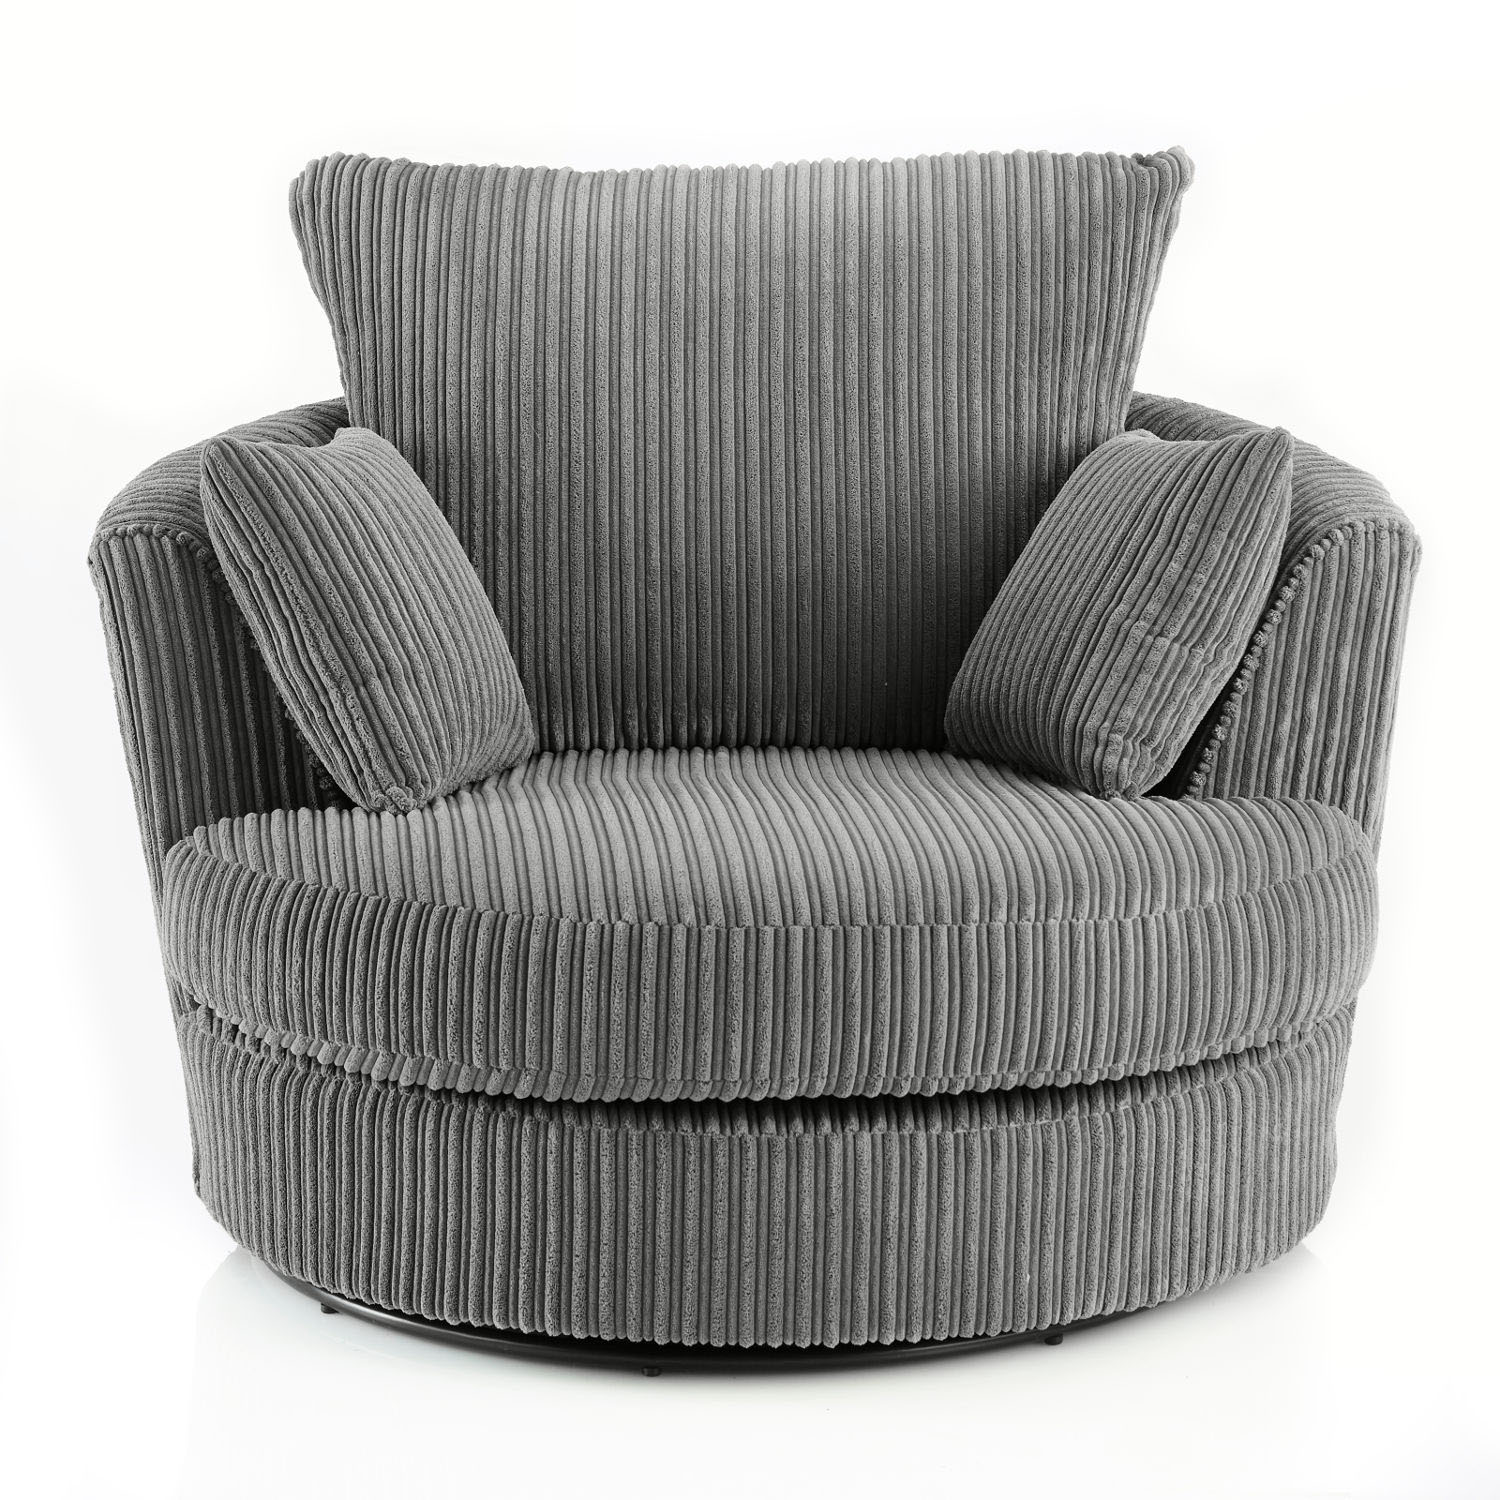 Fantastic Jumbo Cord Corner Sofa And Cuddle Chair Sofa Ideas Pabps2019 Chair Design Images Pabps2019Com